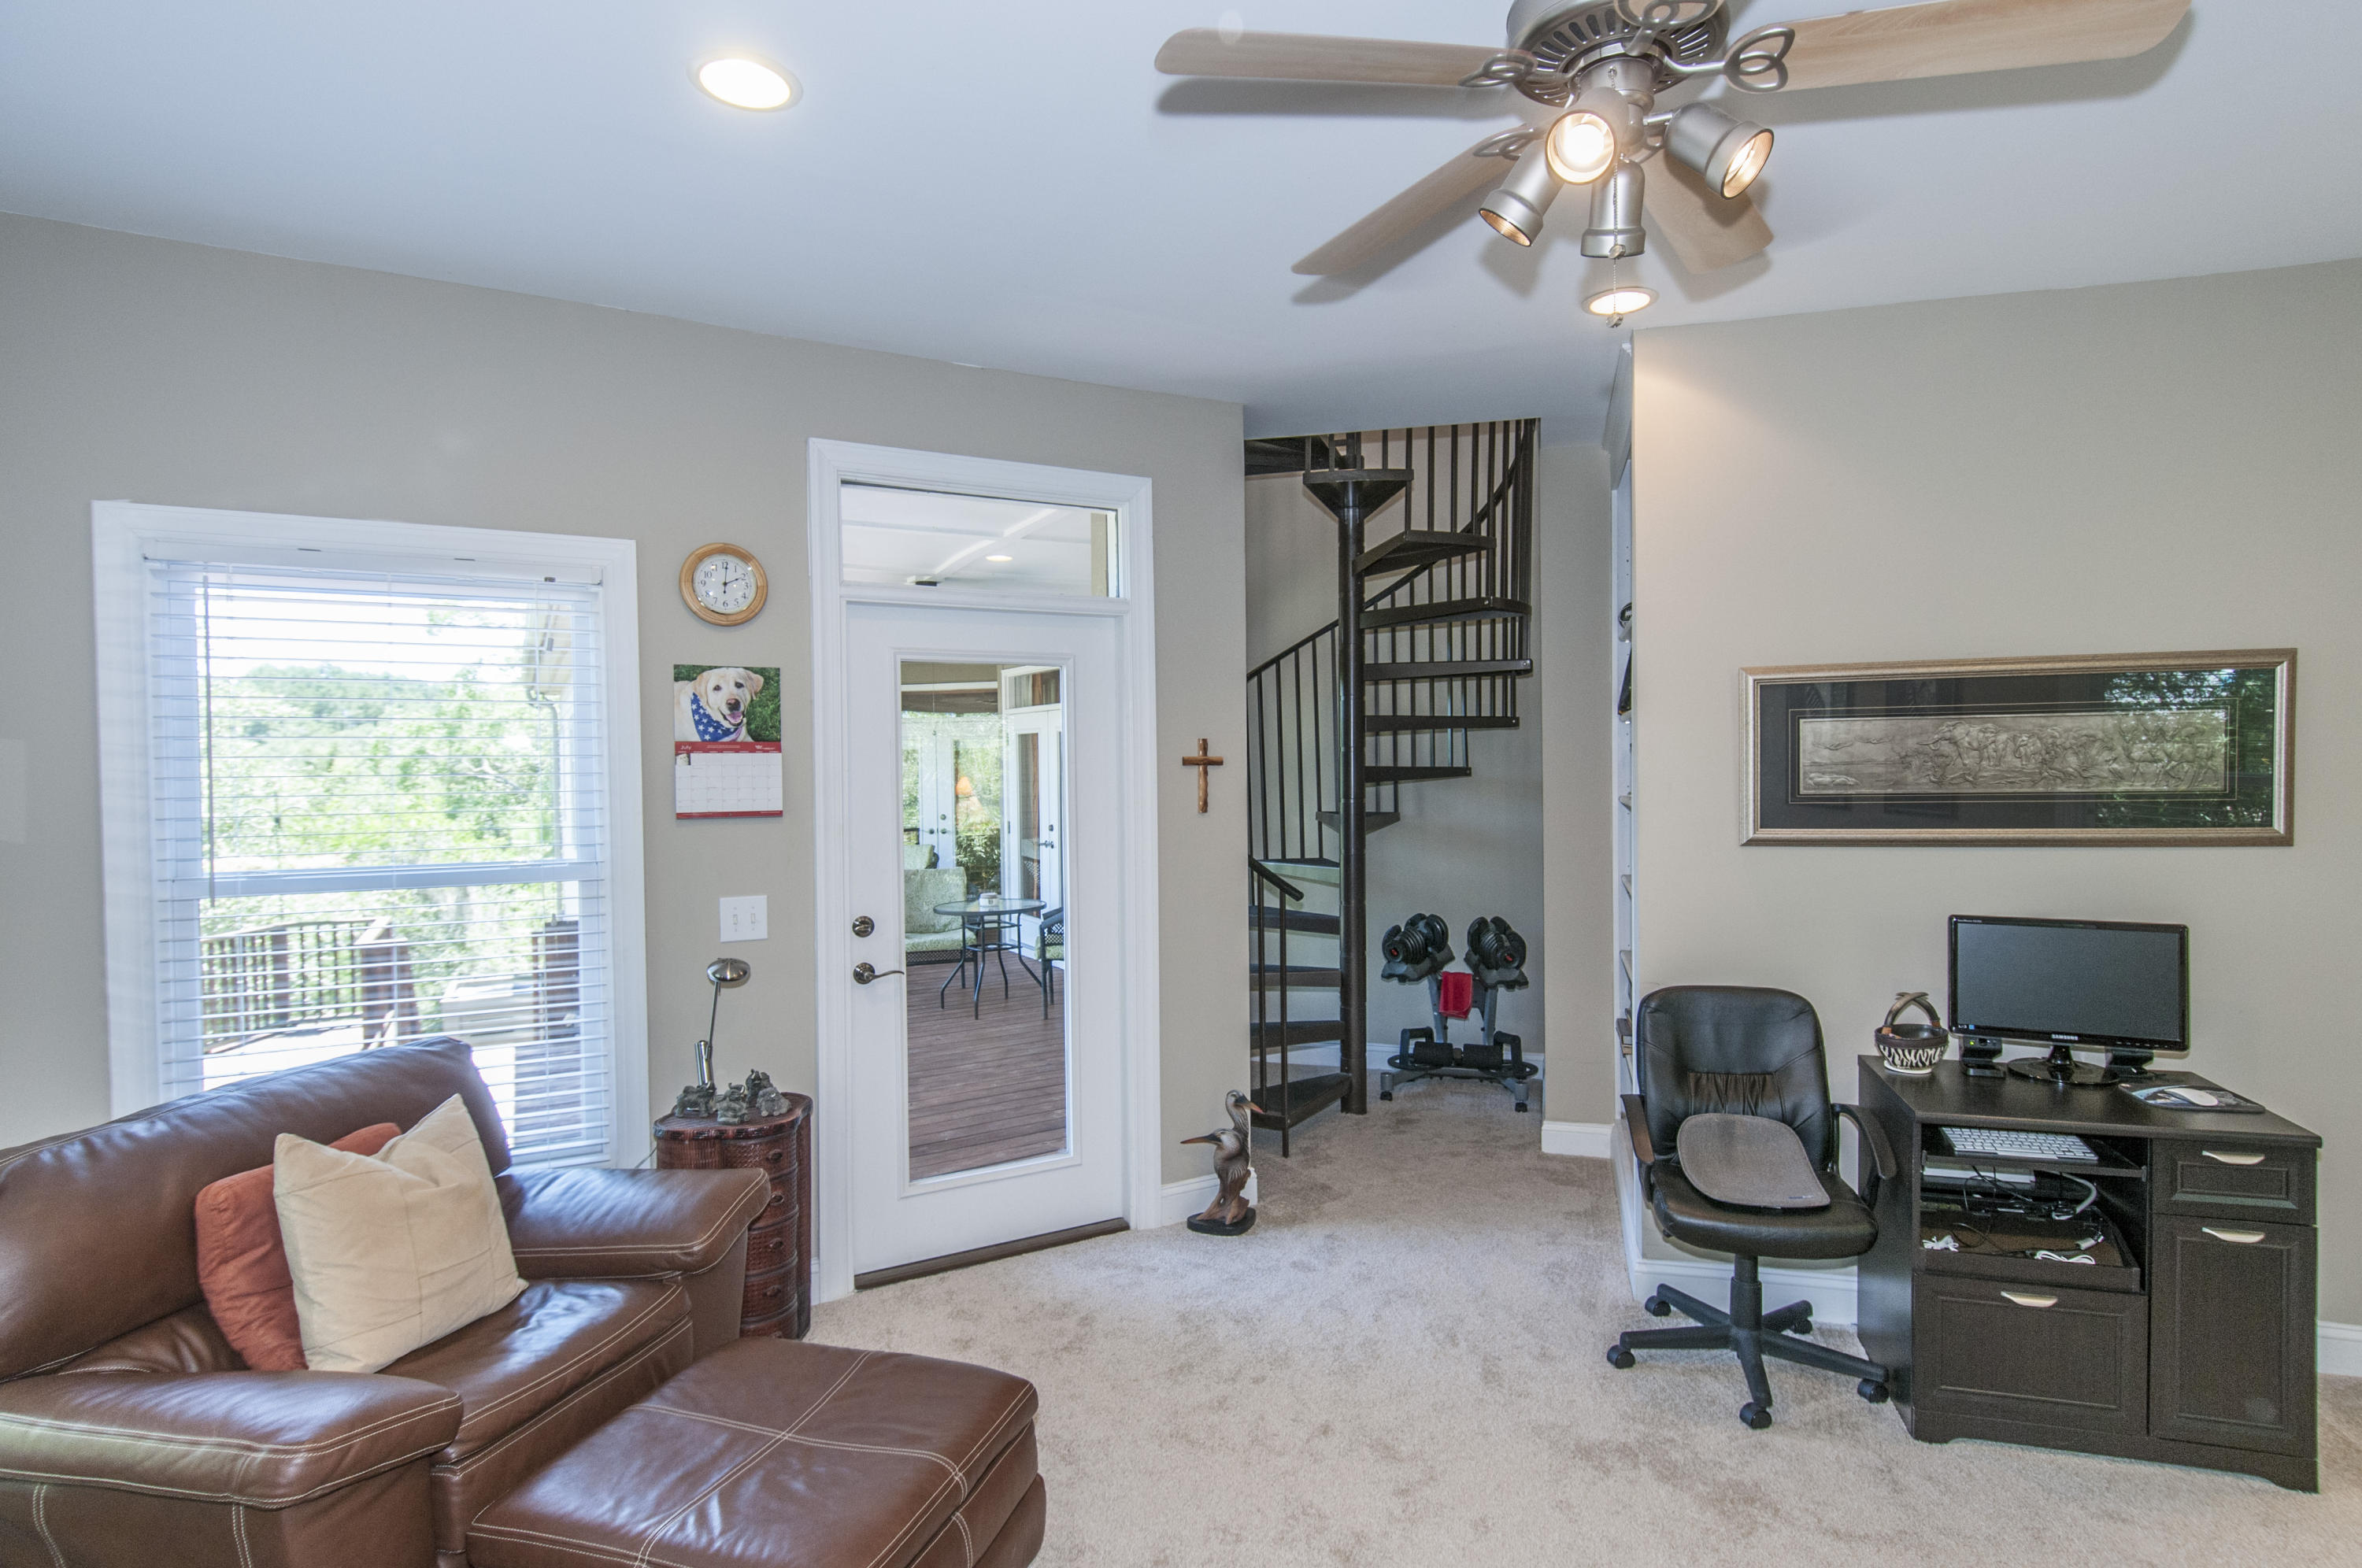 The Marshes at Rushland Landing Homes For Sale - 3022 Rushland Mews, Johns Island, SC - 14